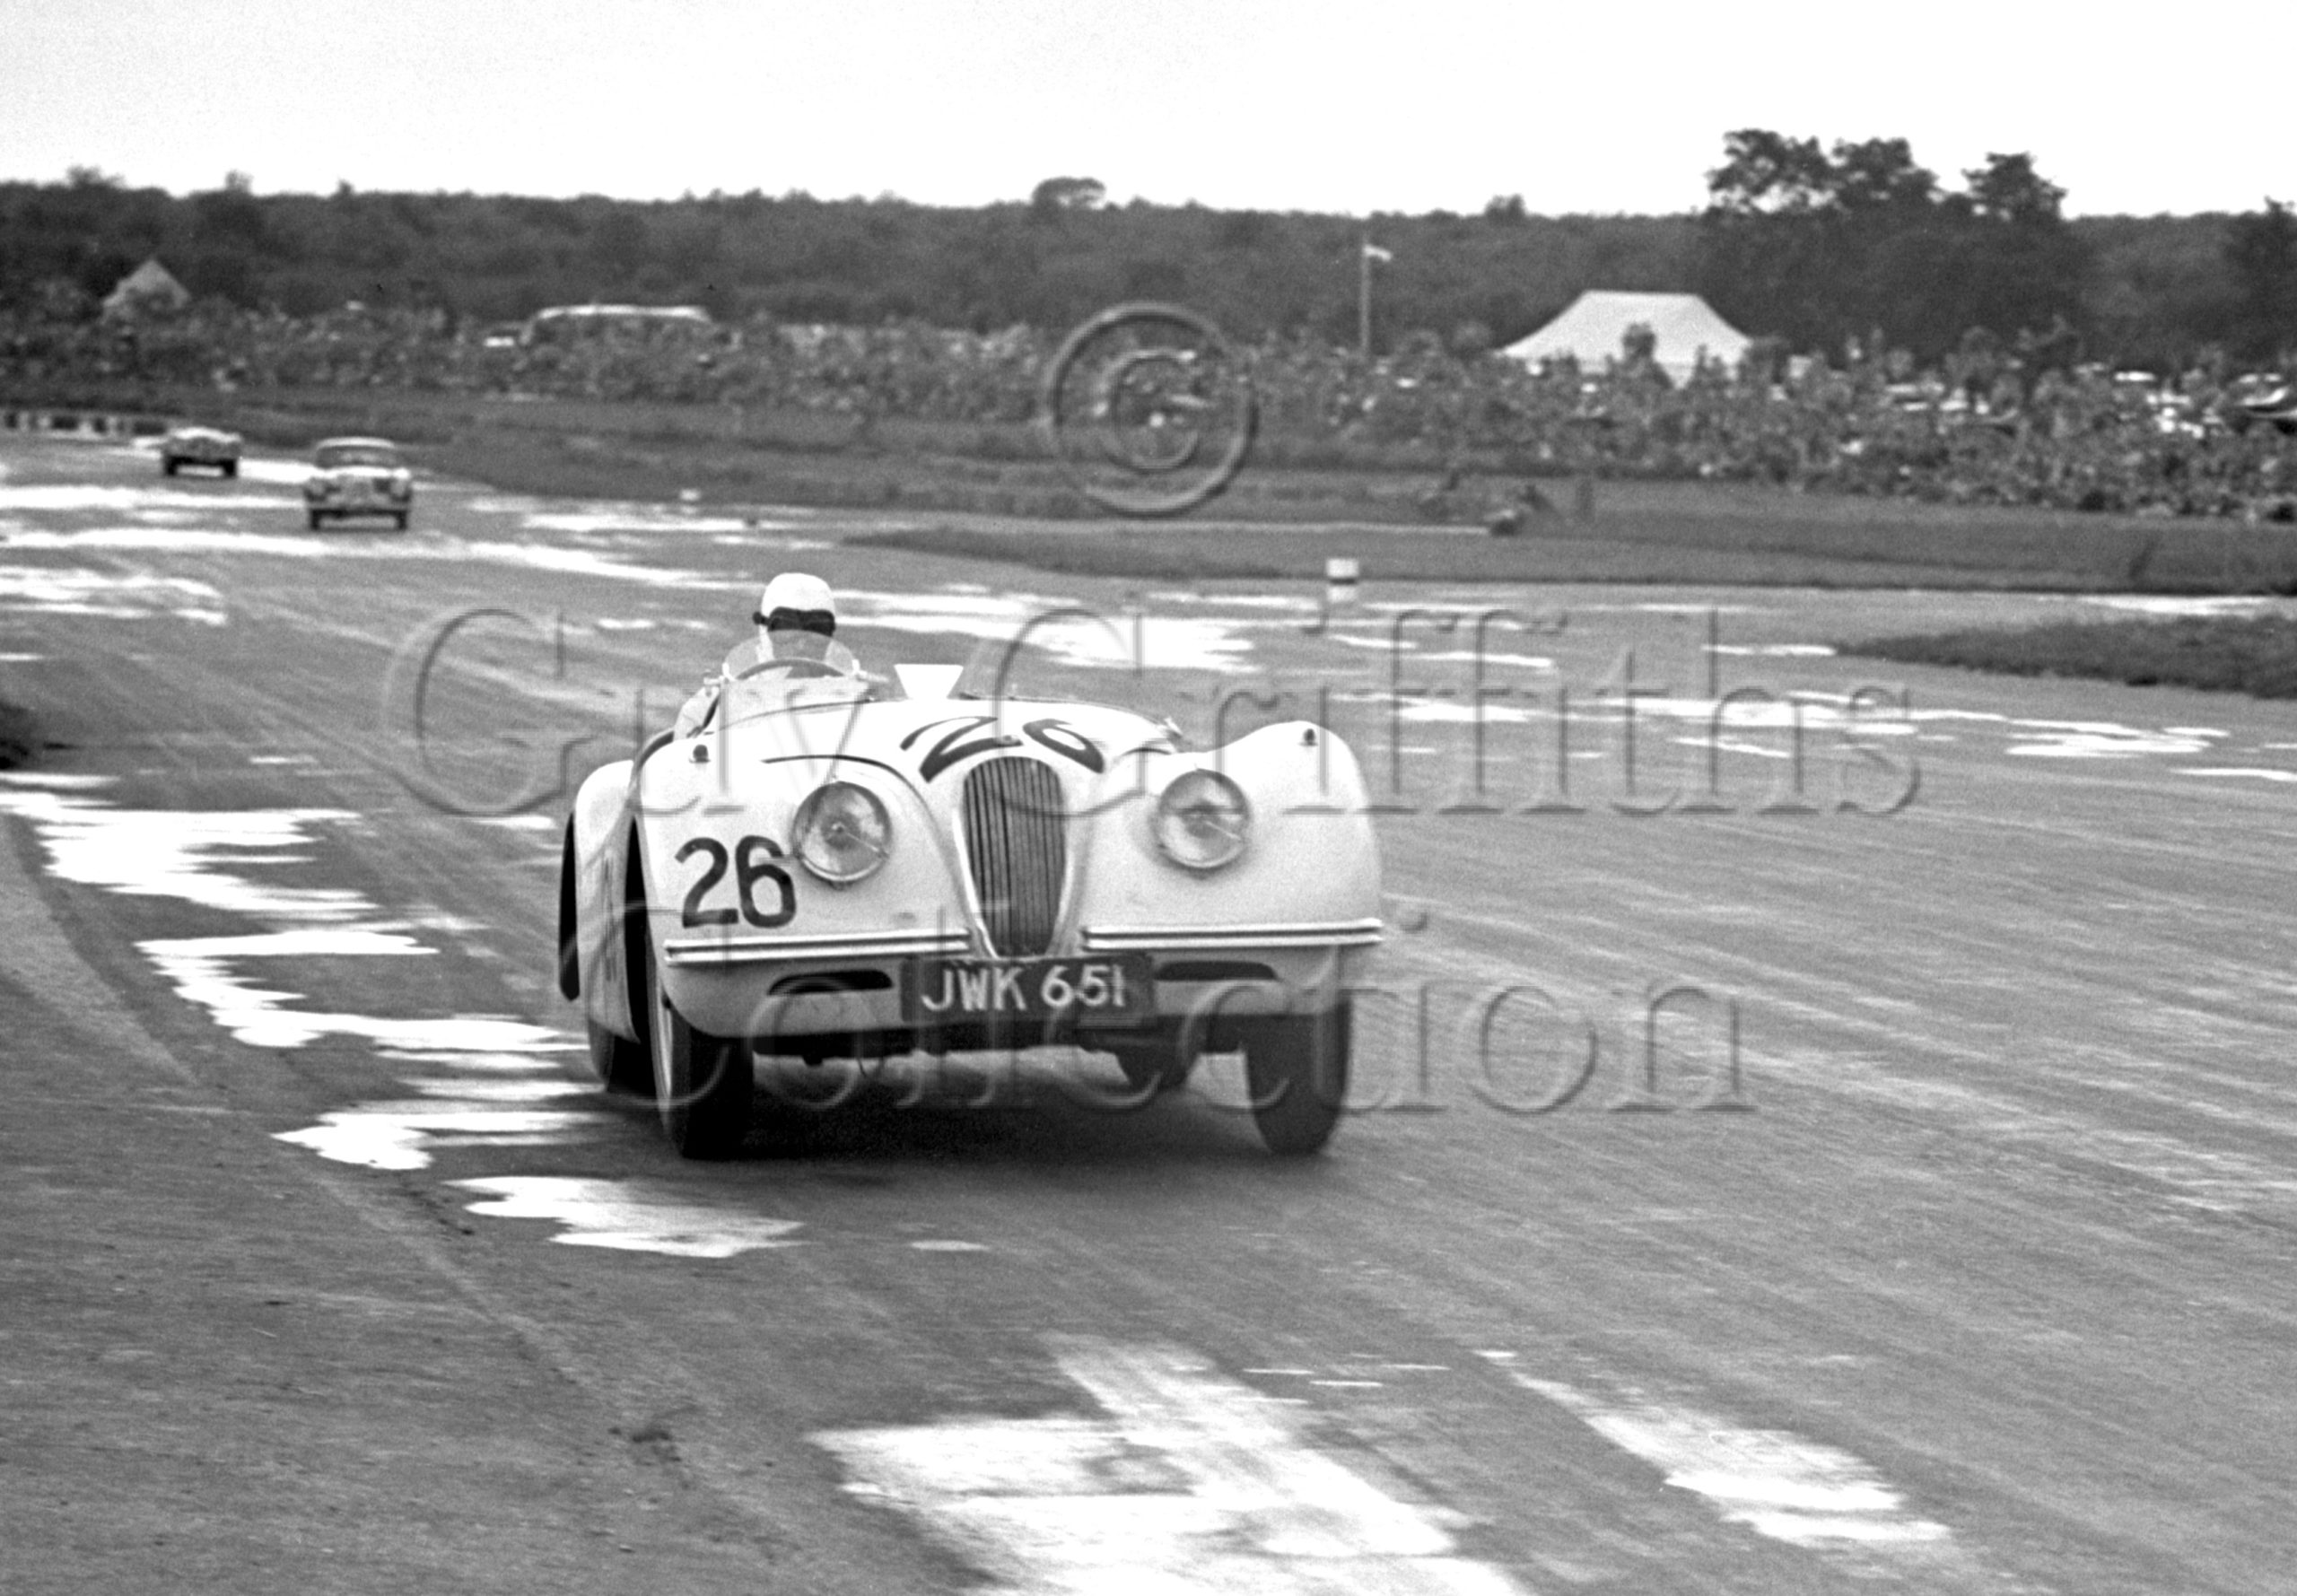 36-182–L-G-Johnson–Jaguar-XK-120-JWK-651–Silverstone–26-08-1950.jpg - Guy Griffiths Collection